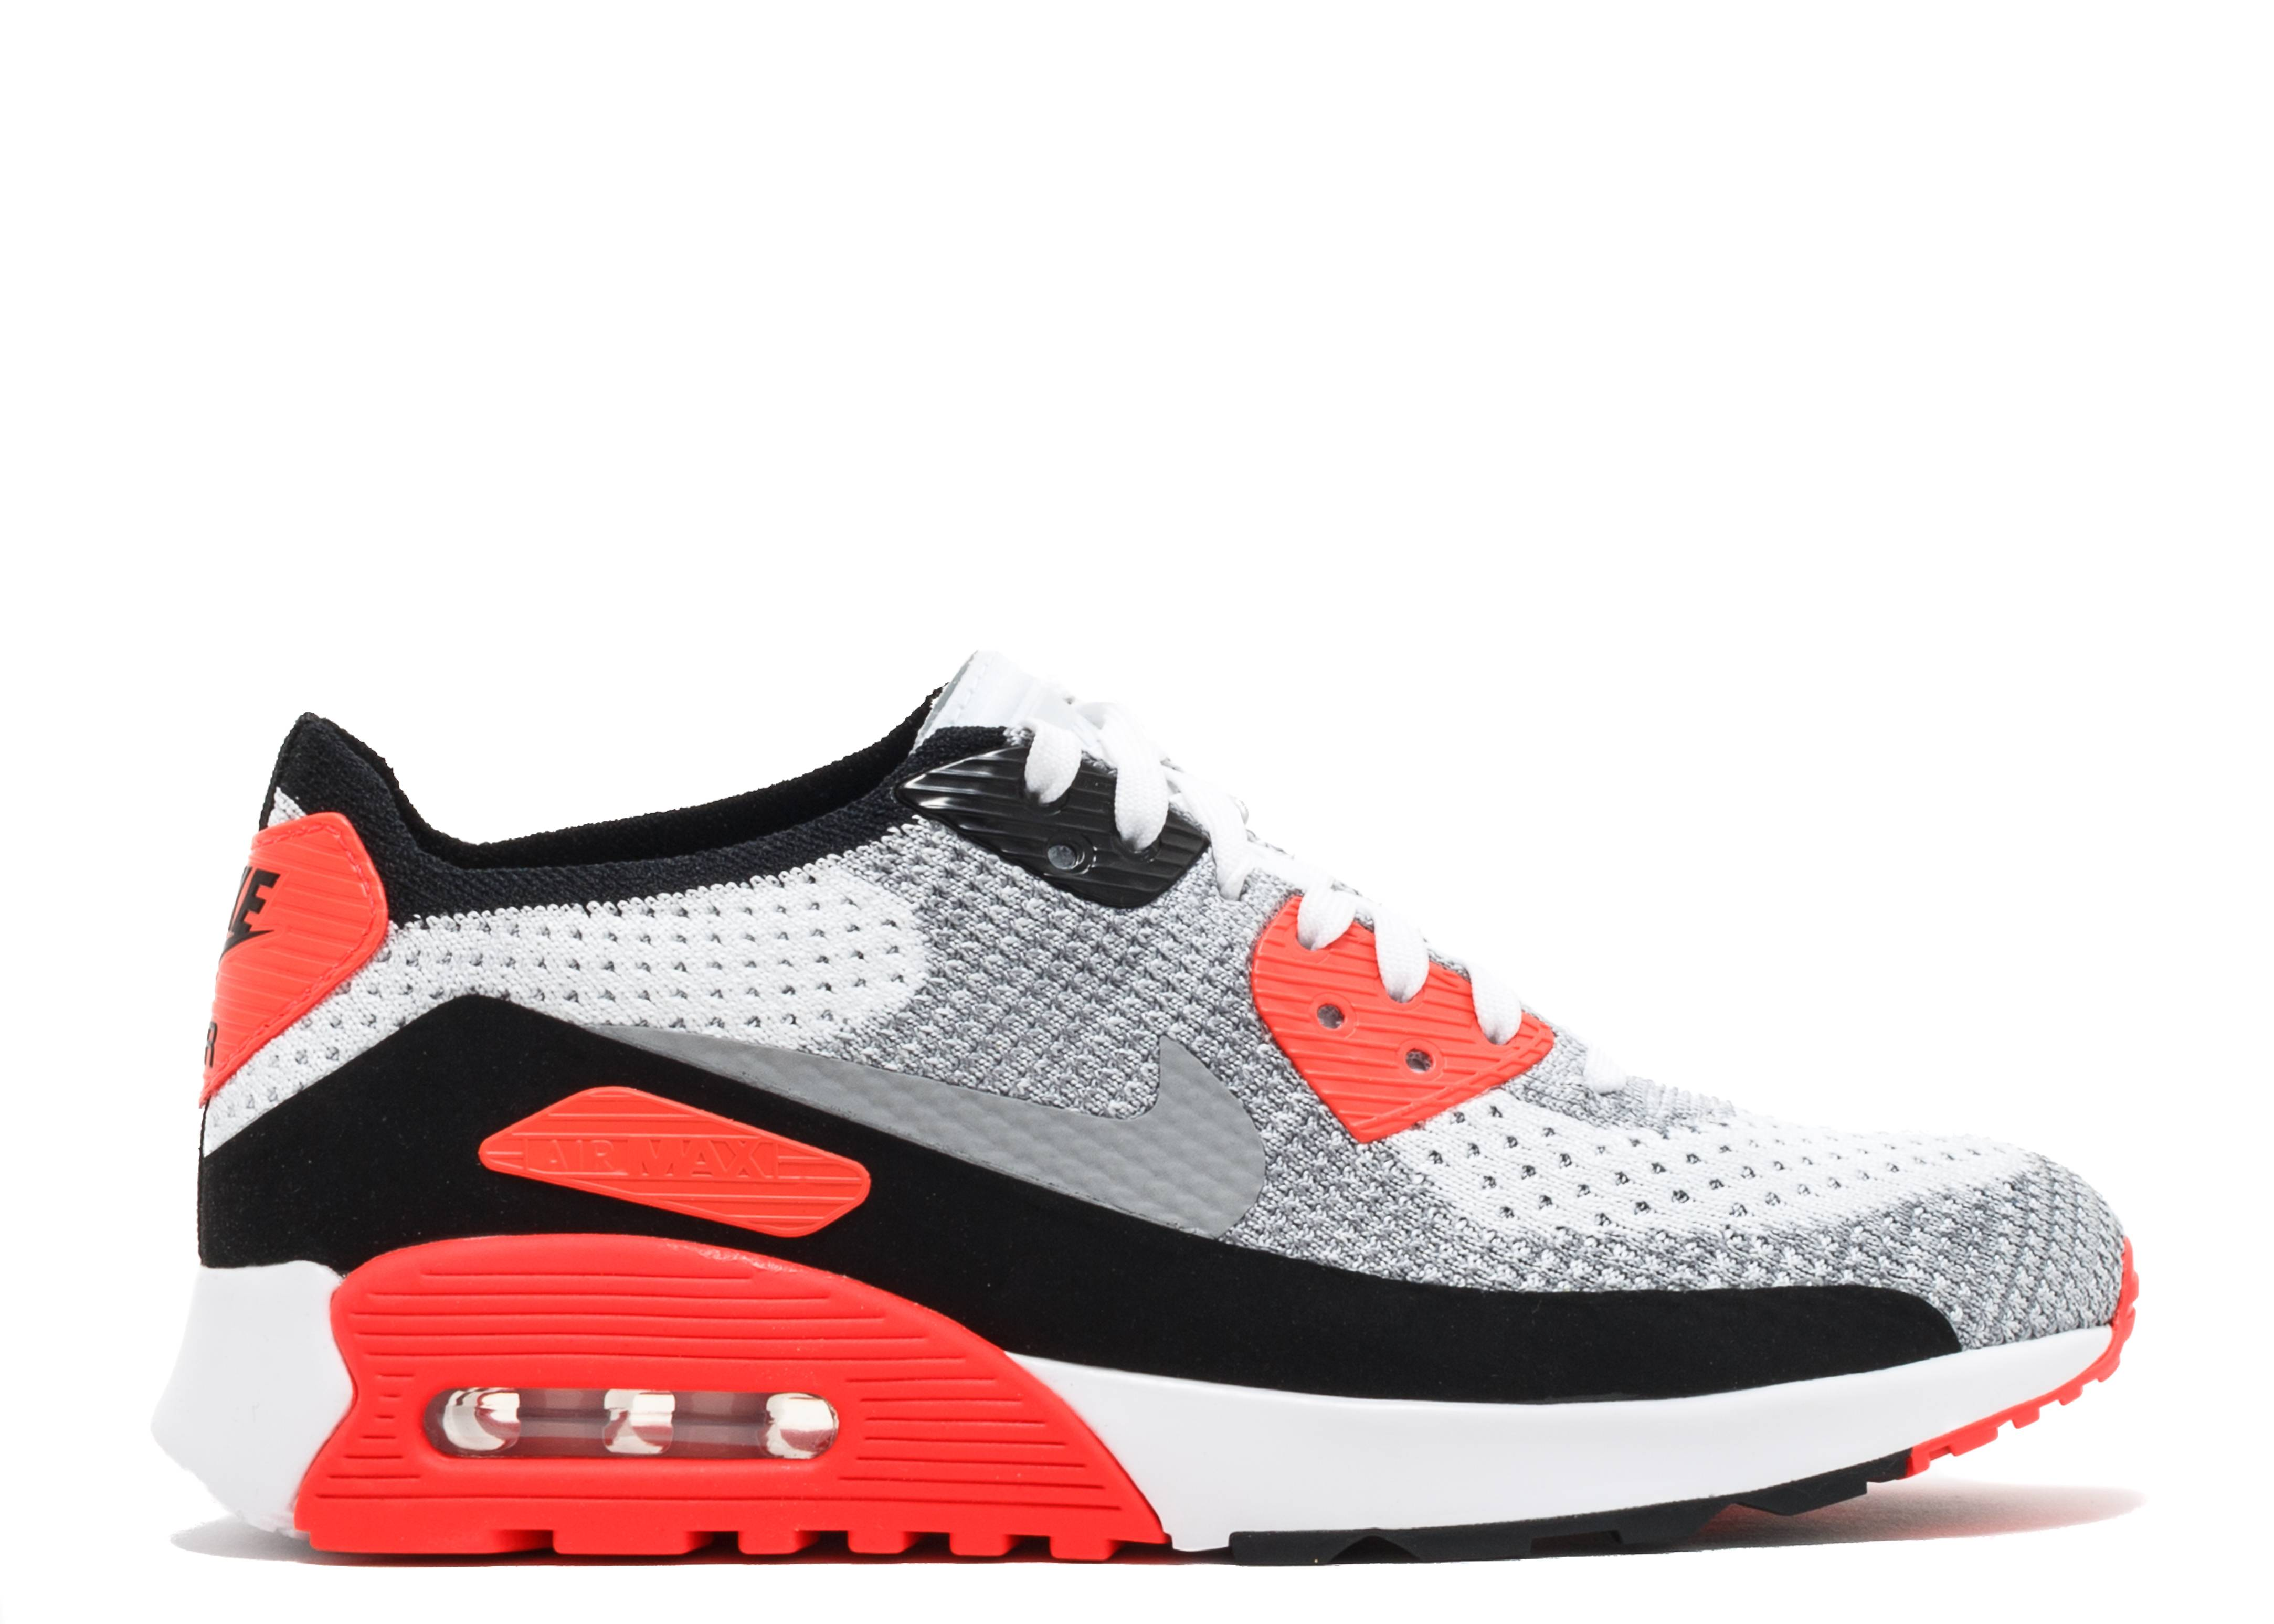 w air max 90 ultra 2 0 flyknit infrared flyknit nike 881109 100 white wolf grey bright. Black Bedroom Furniture Sets. Home Design Ideas